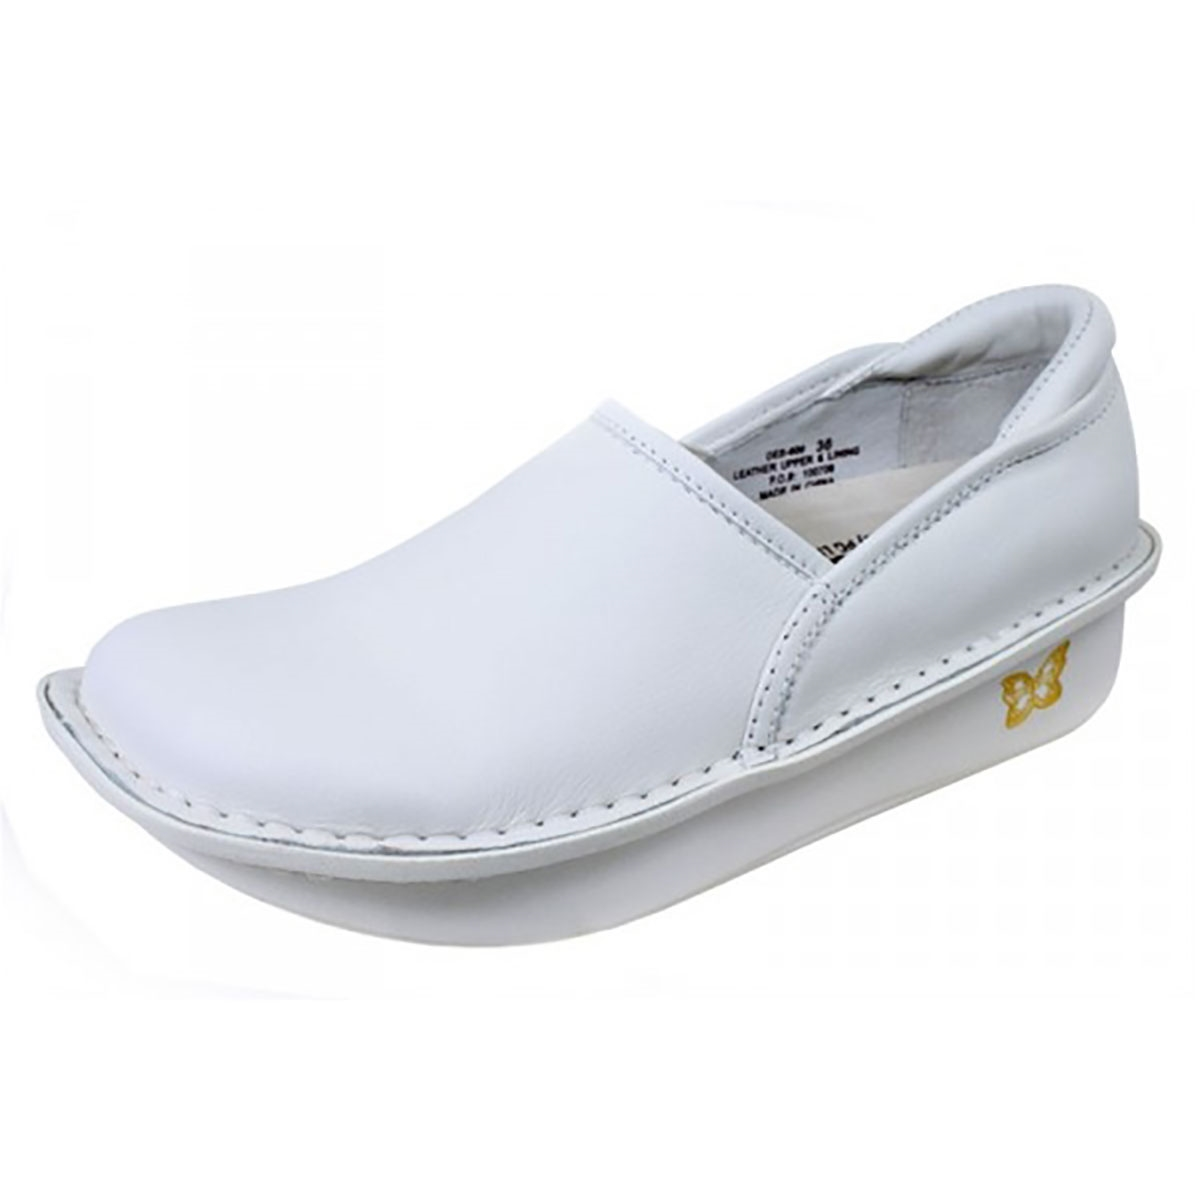 give care in comfort with alegria debra white leather